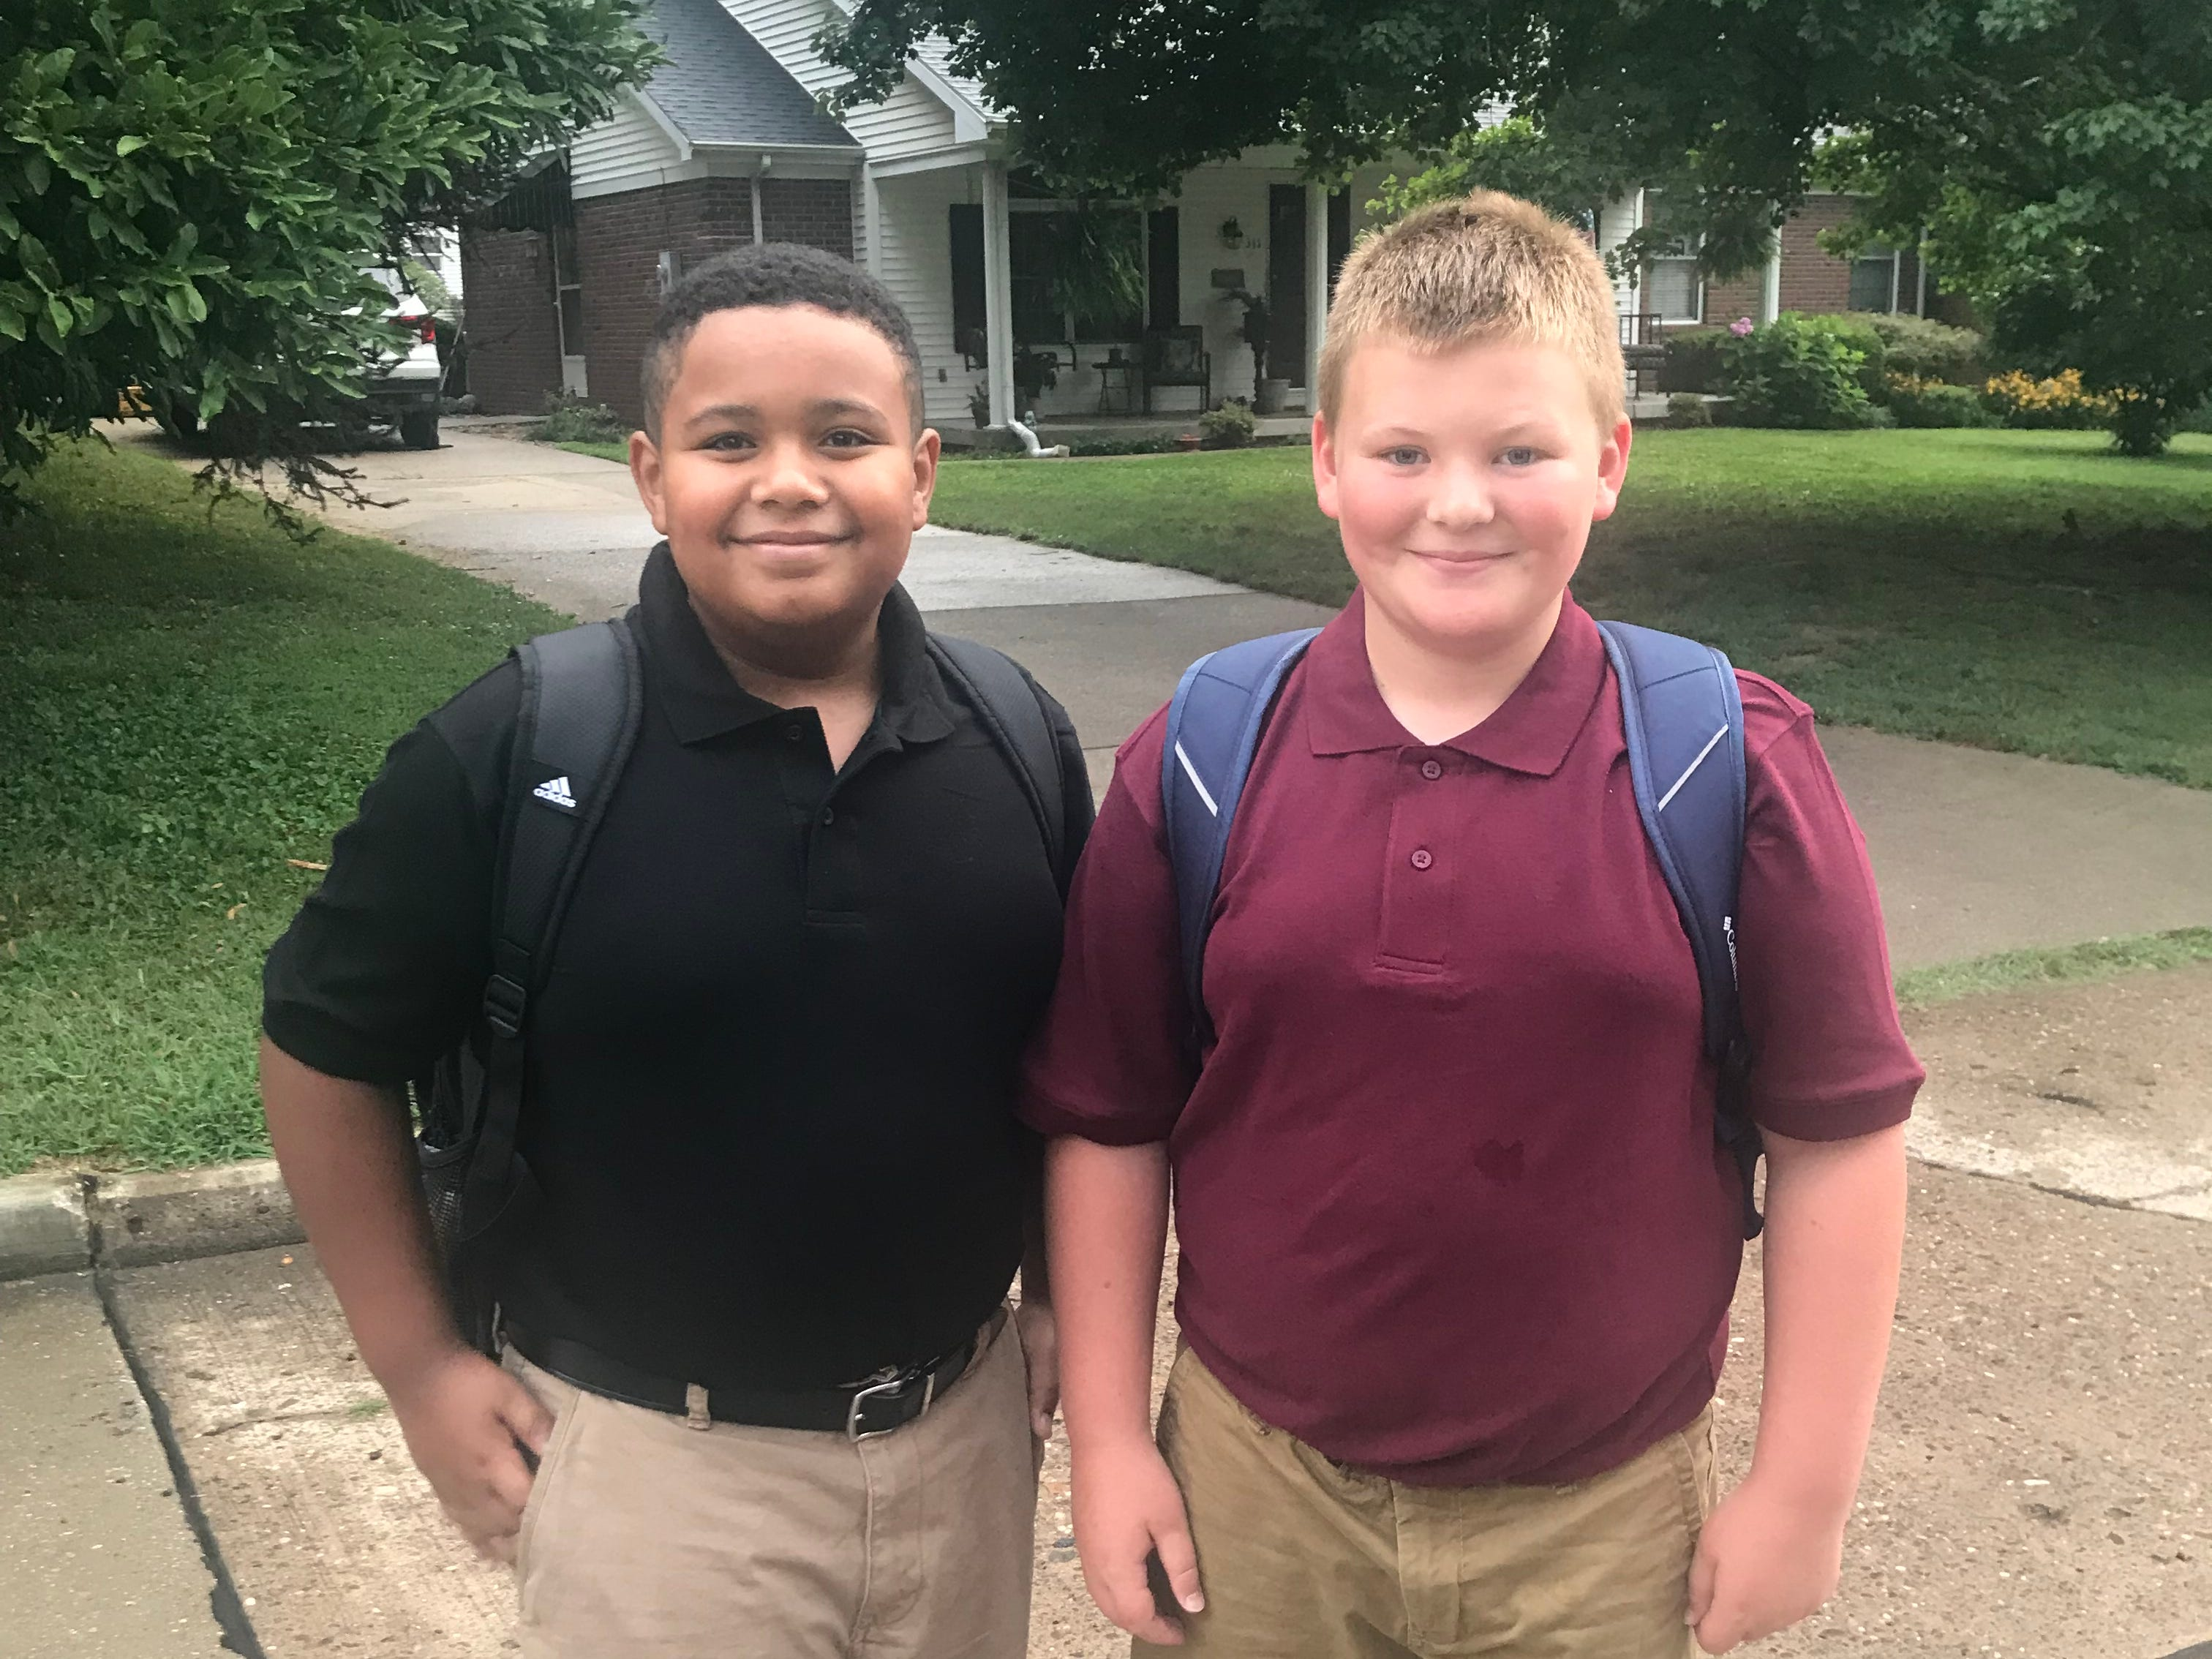 E.J. Williams and Zane Wilson, 6th grade